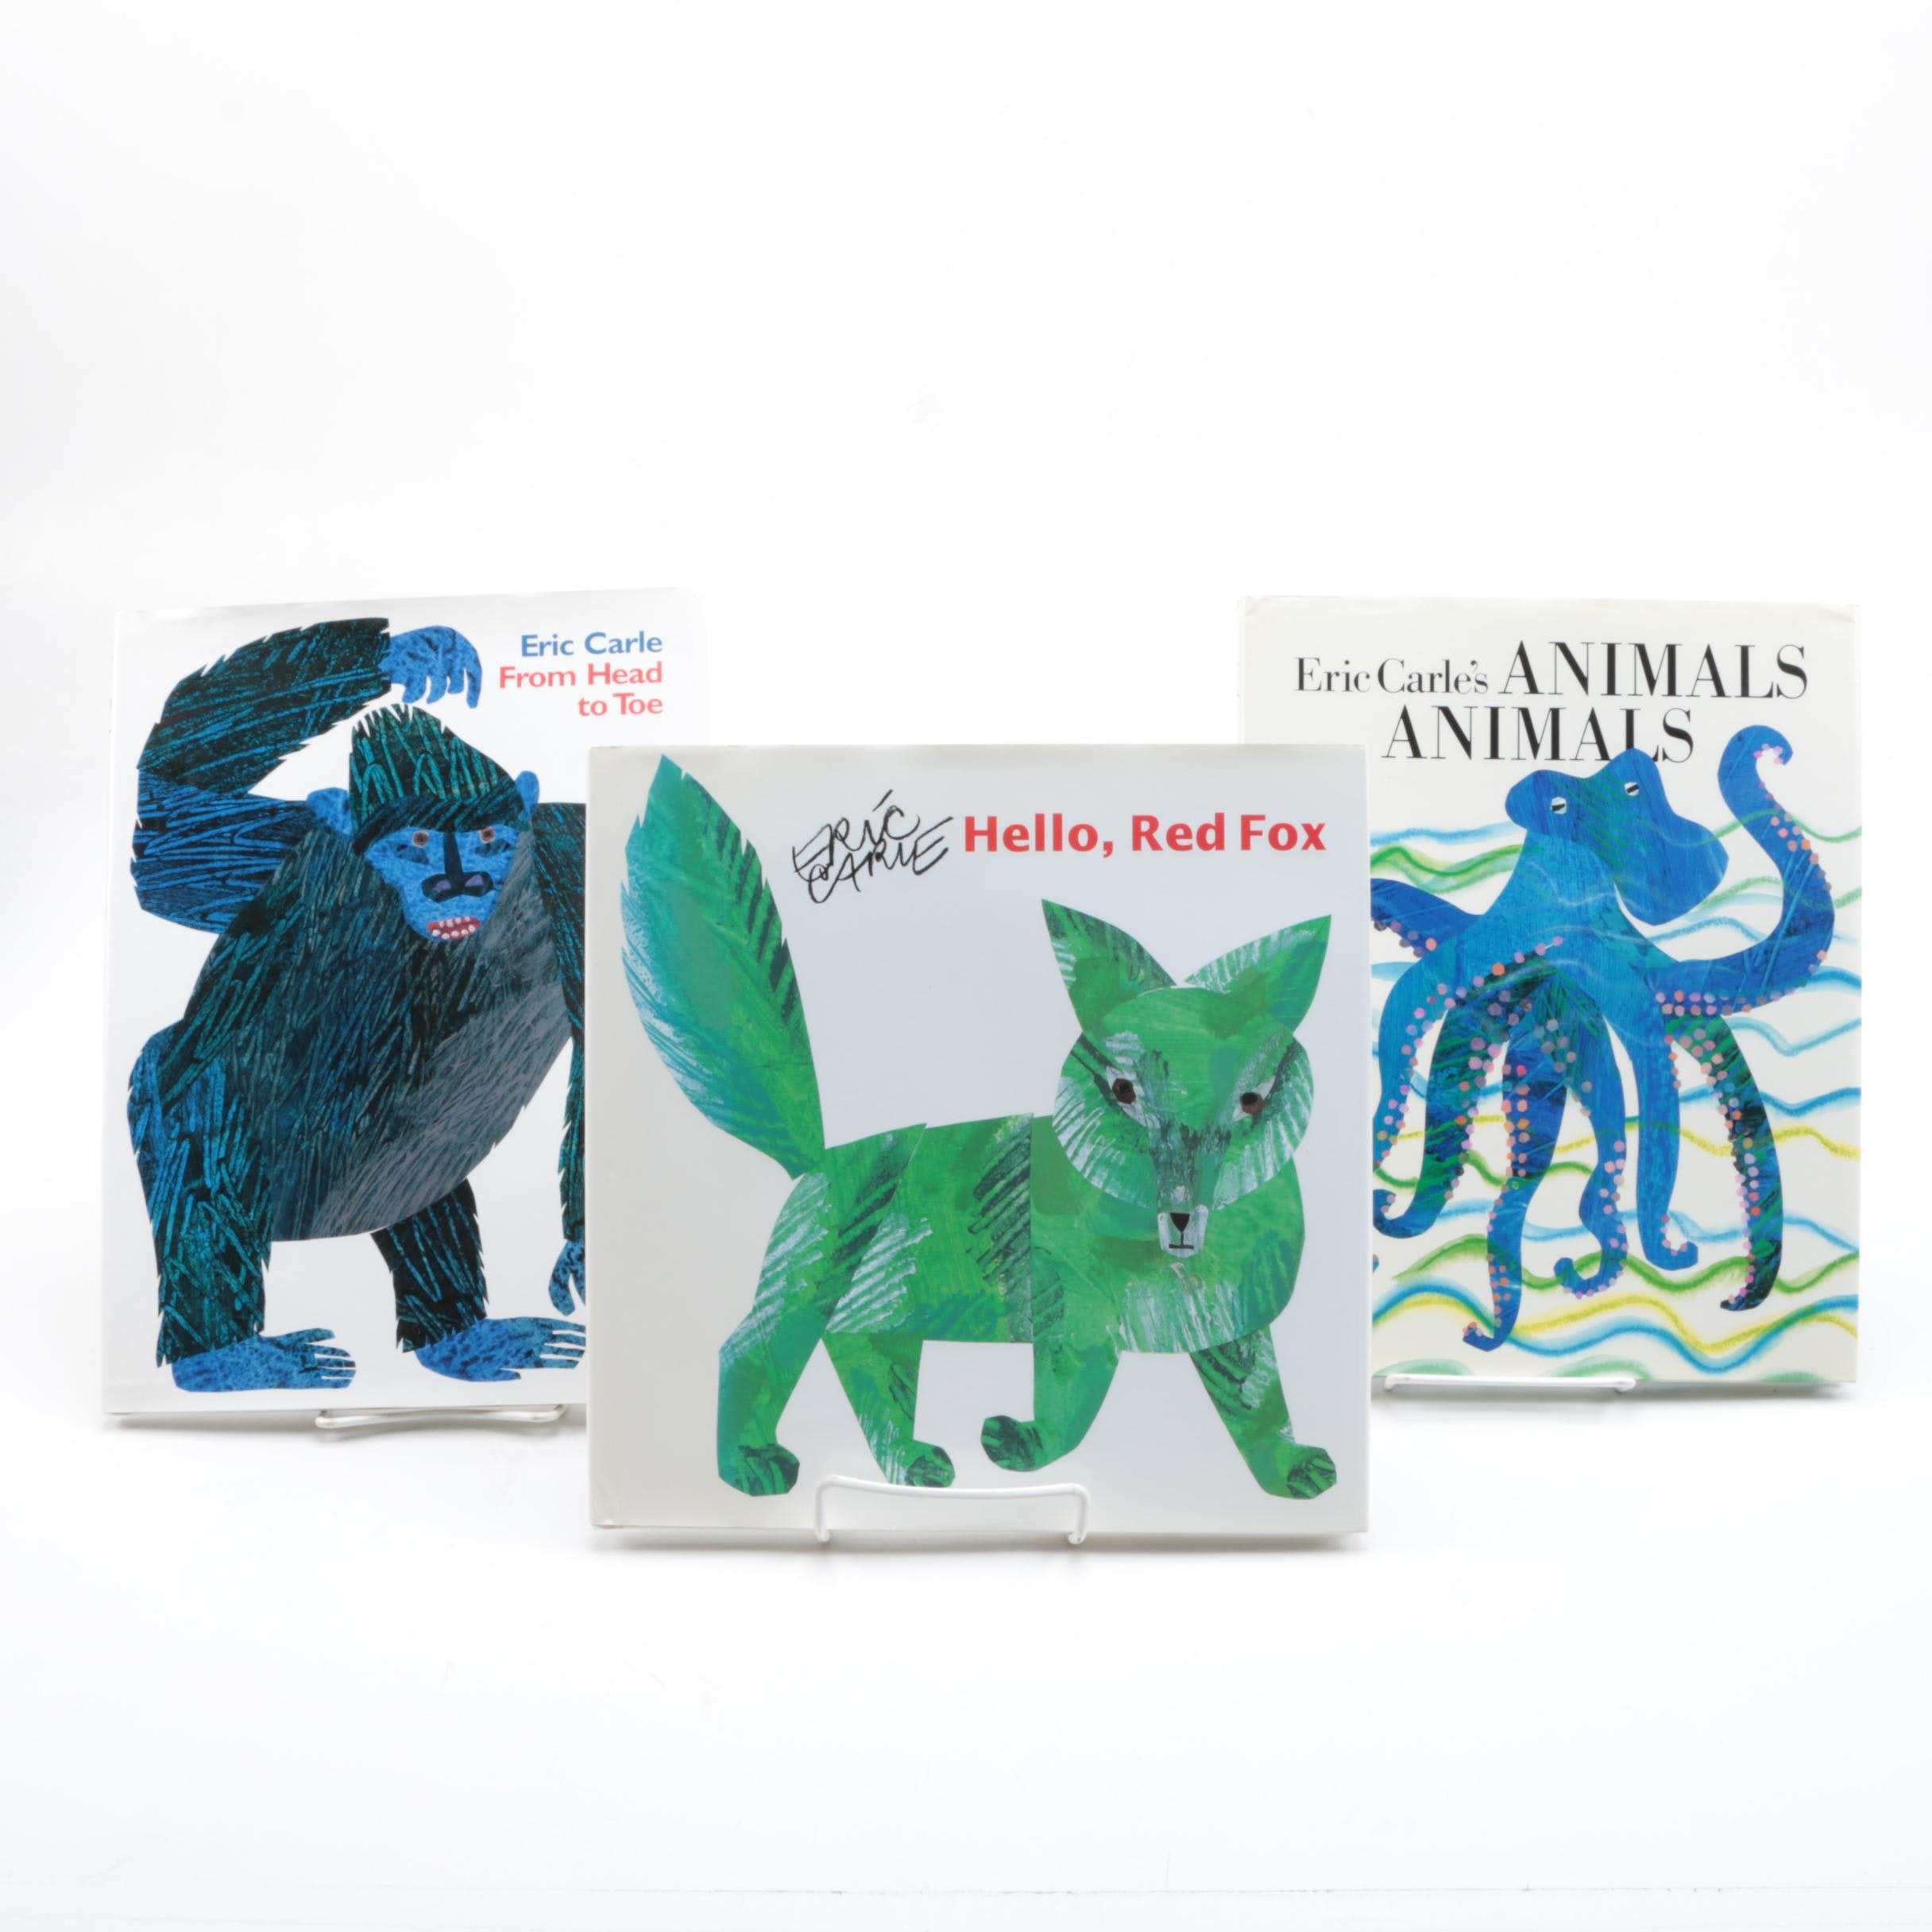 Signed First Edition Works by Eric Carle